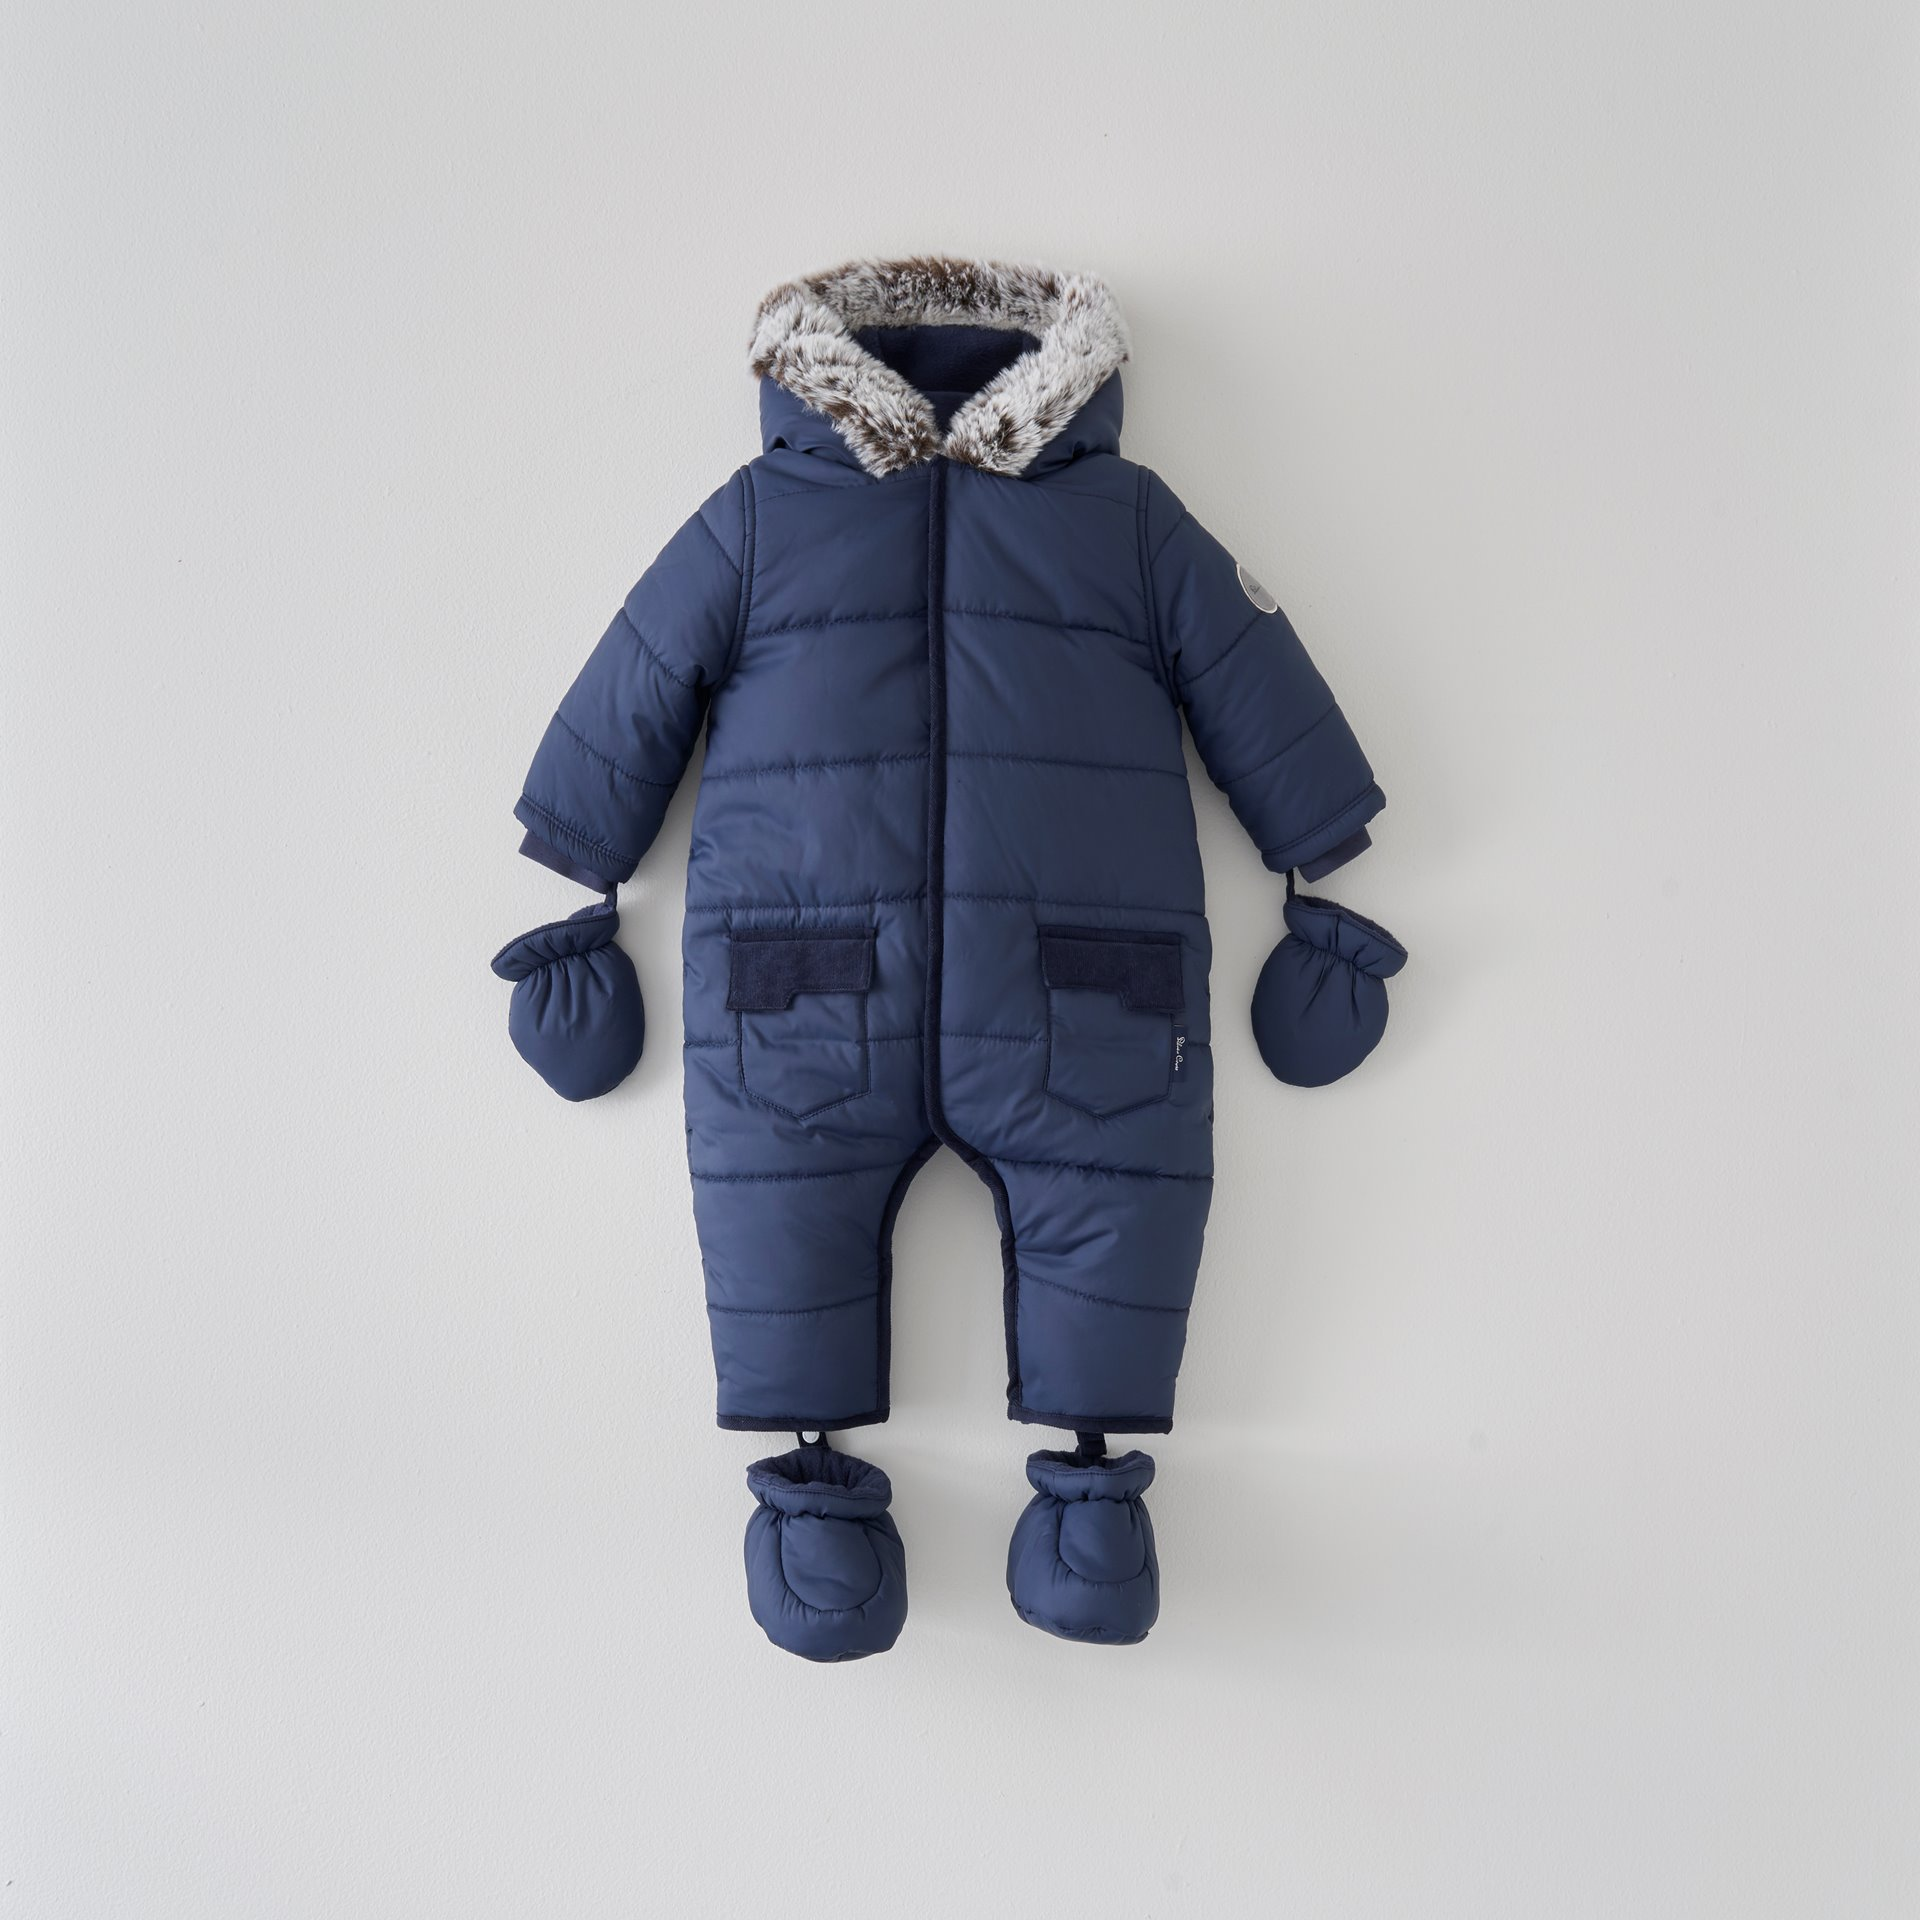 Navy Quilted Pramsuit 9-12 Months